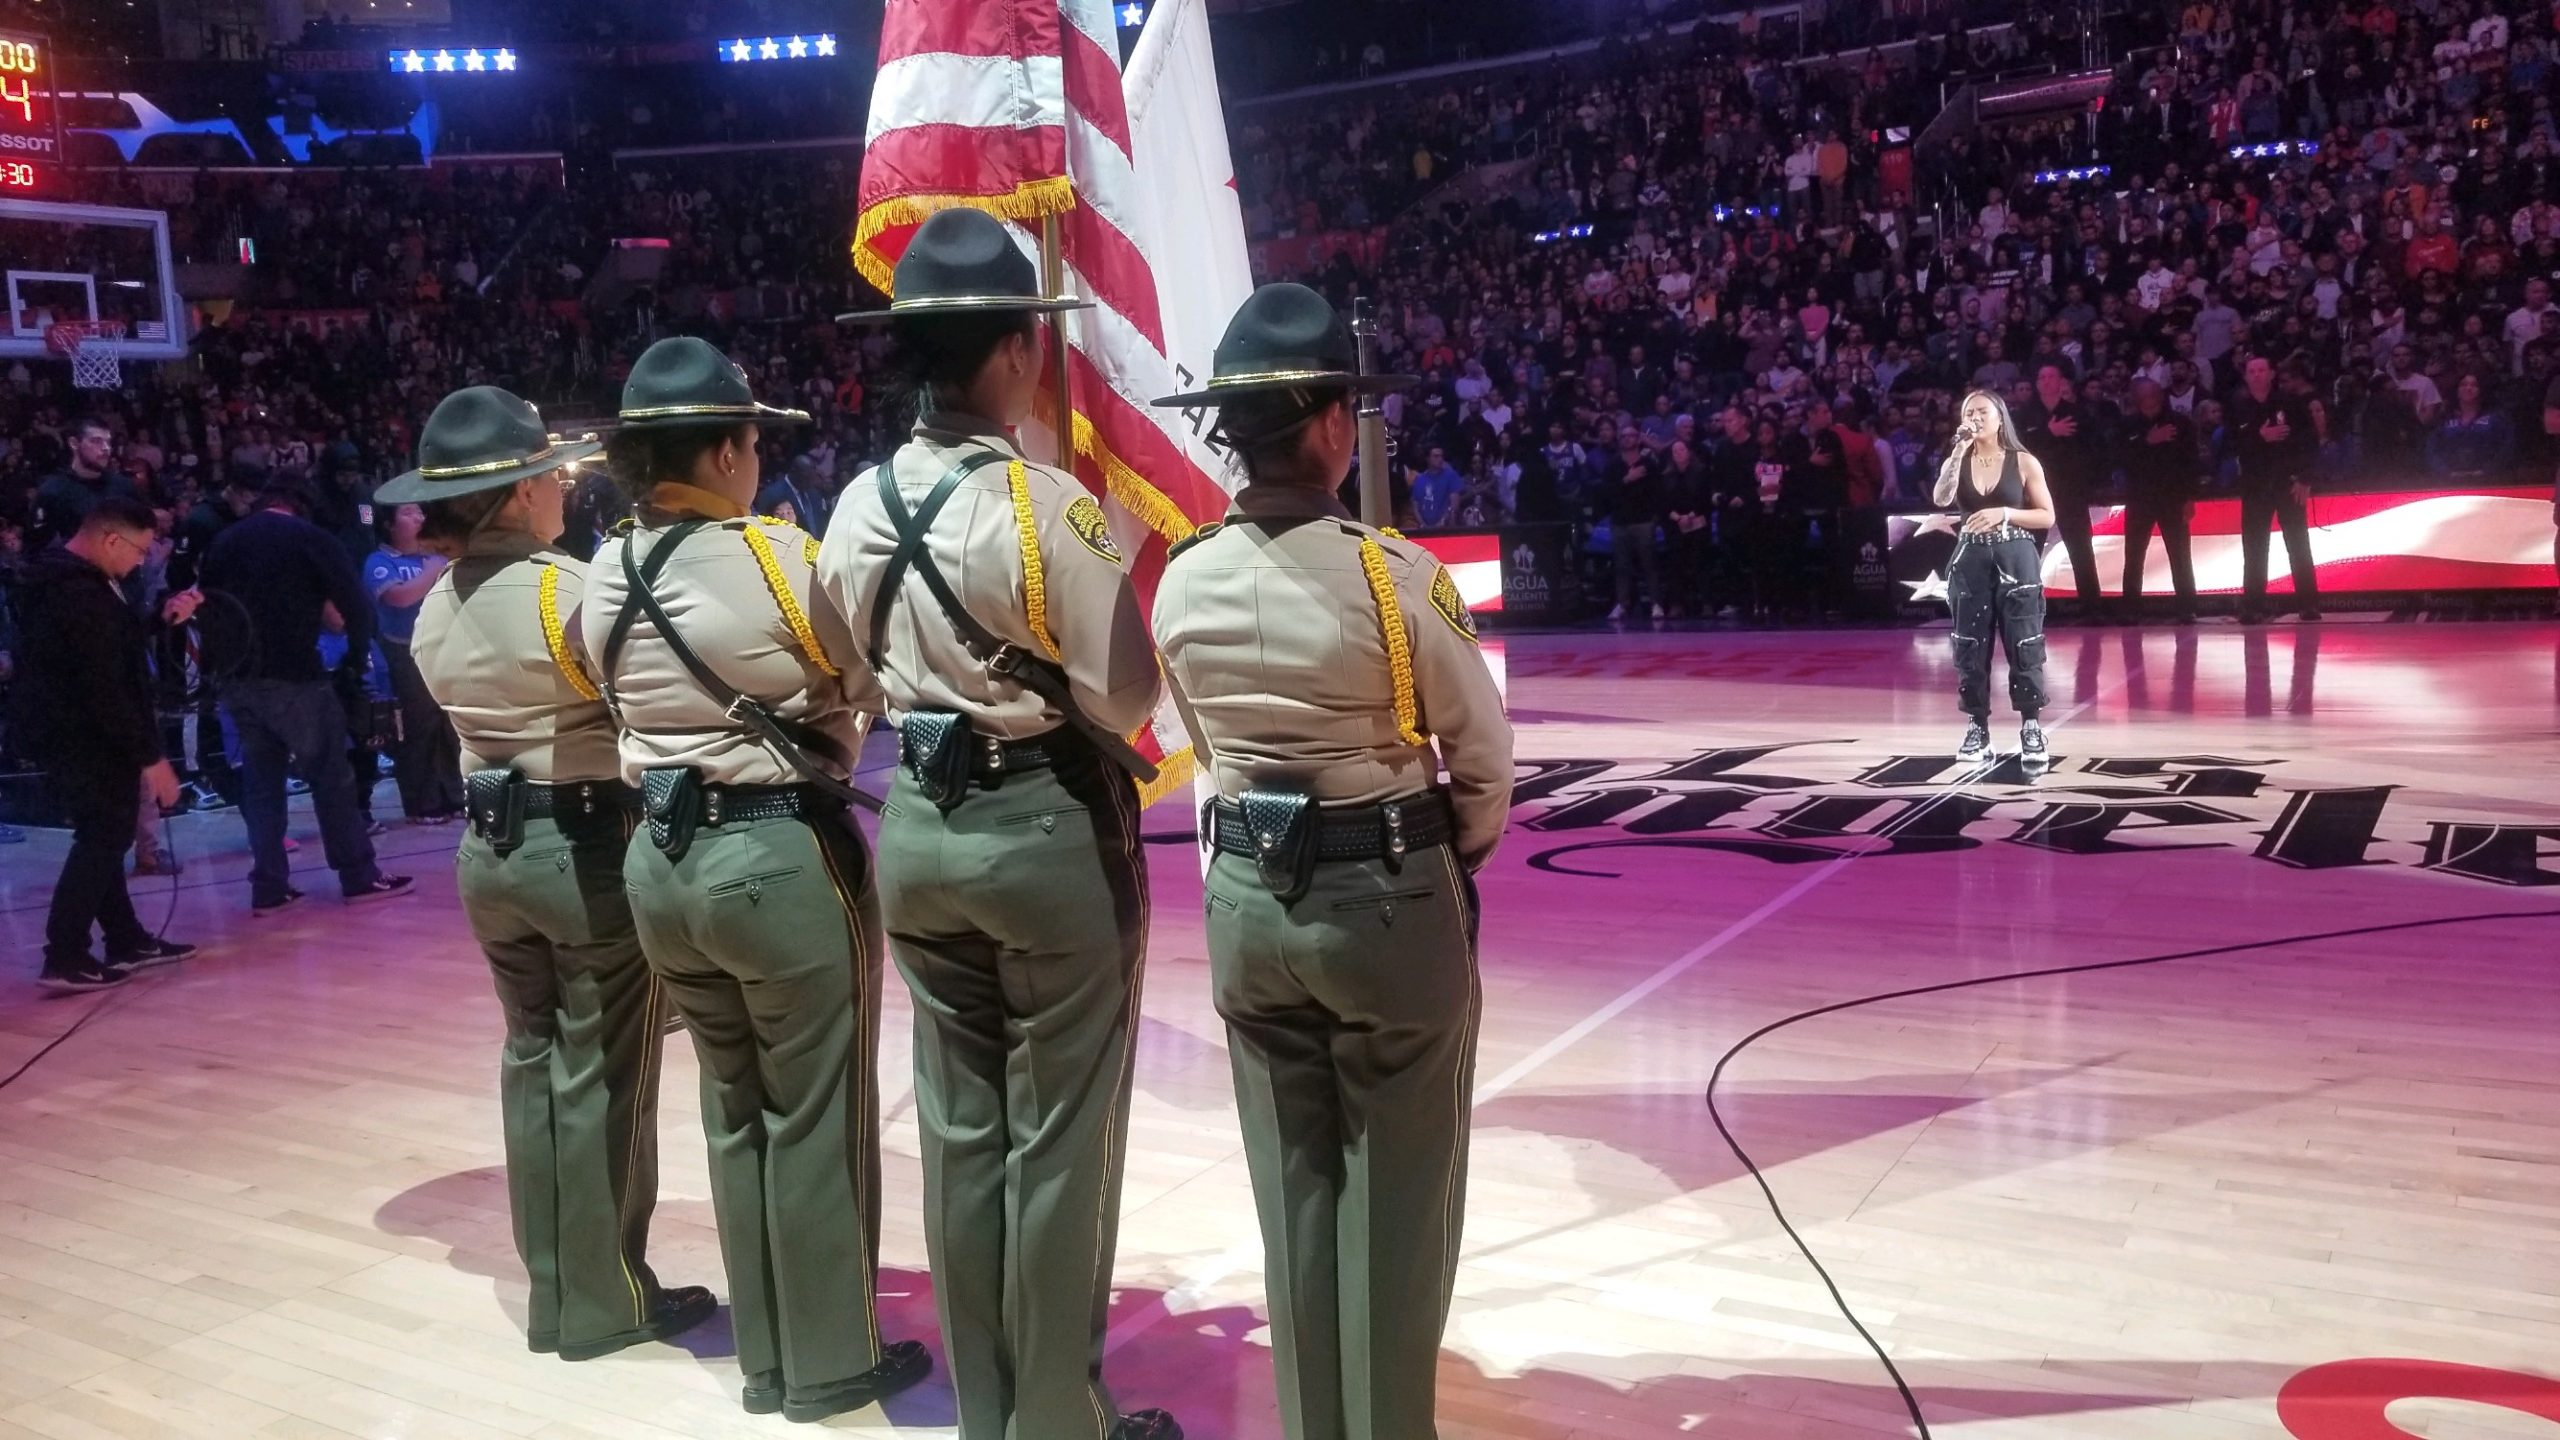 Female officers stand at attention while holding flags.